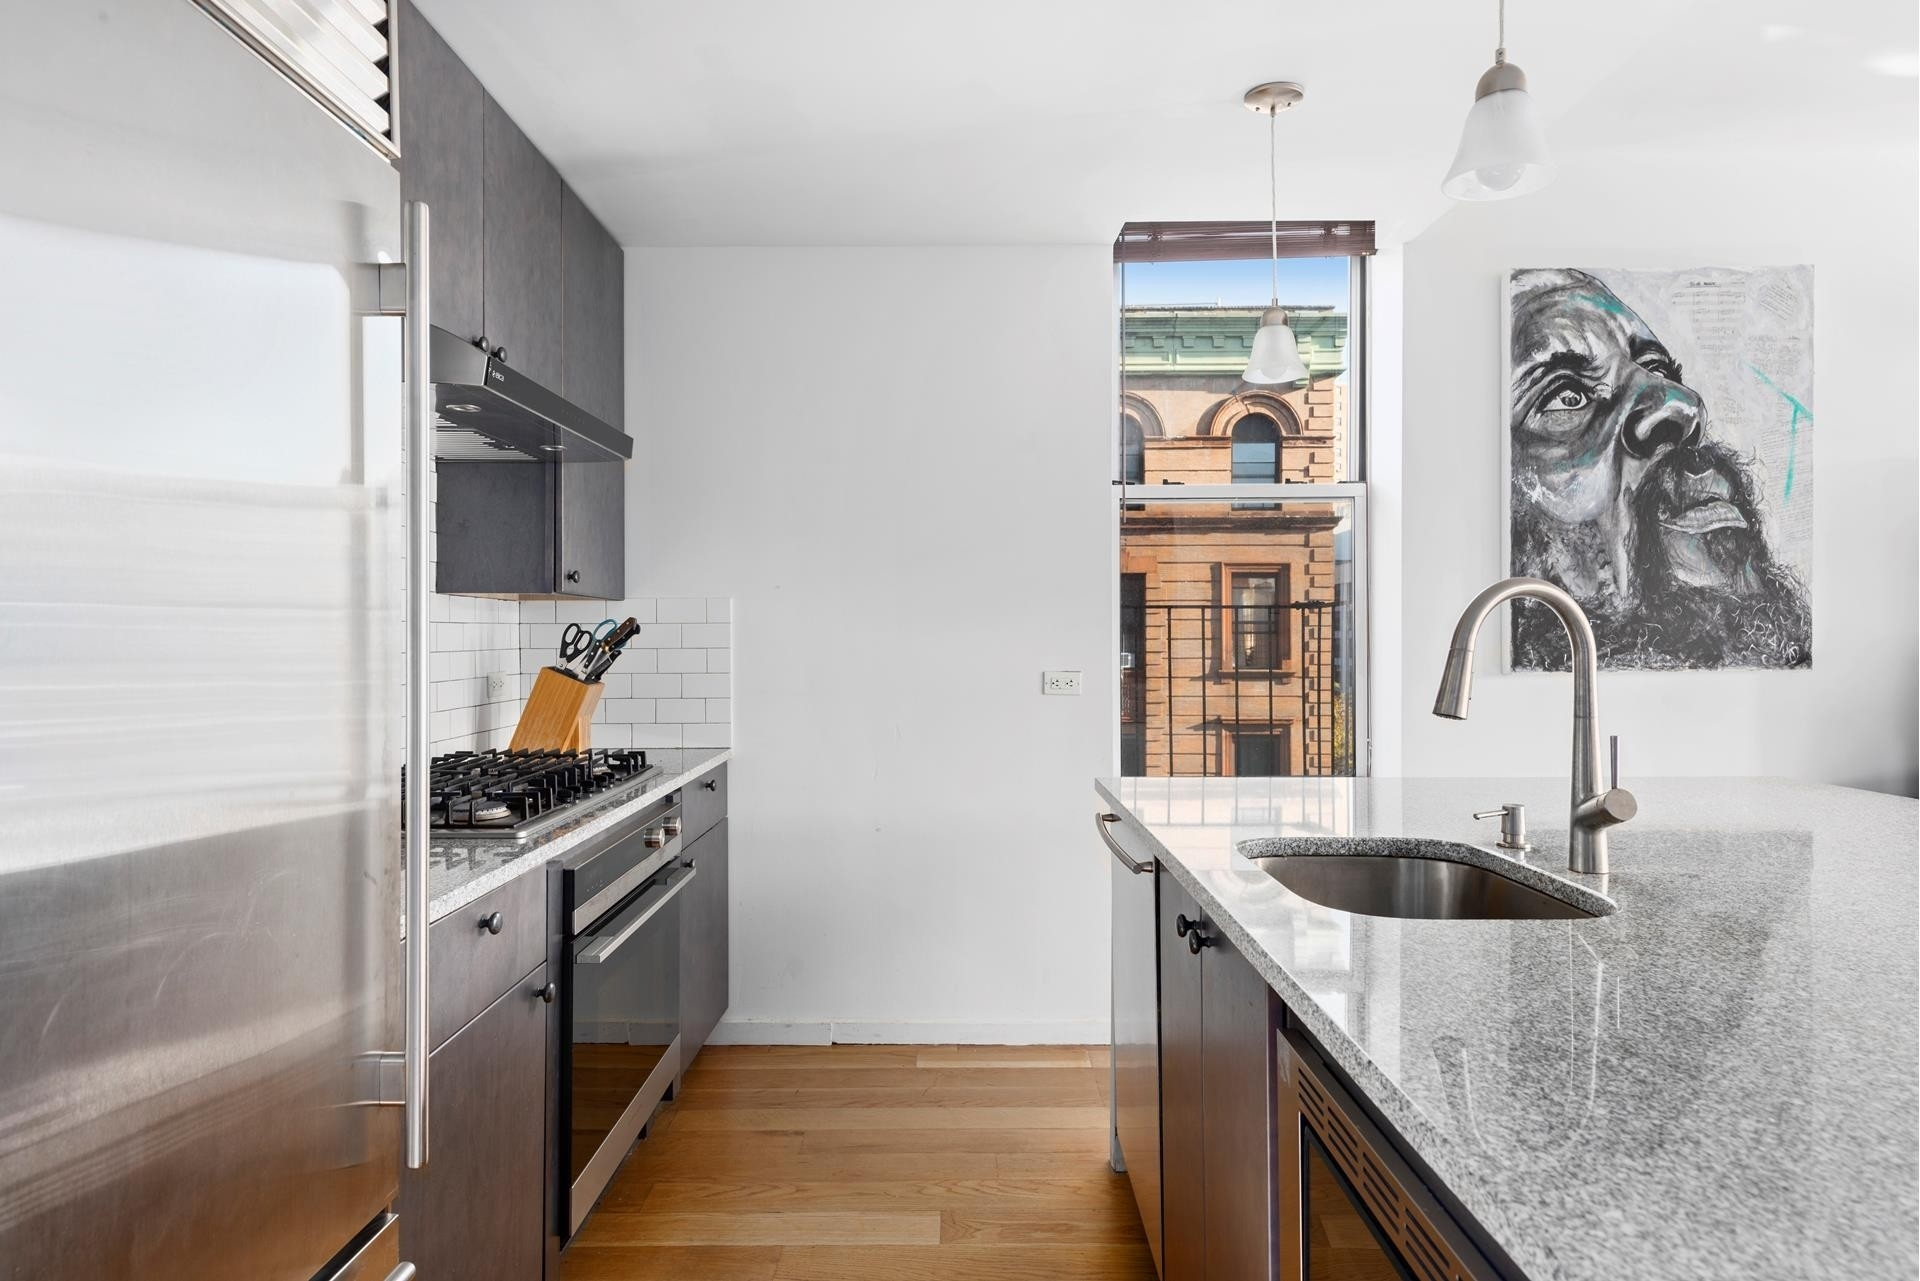 4. Condominiums for Sale at One Striver's Row, 2605 Frederick Douglass Boulevard, 4B Central Harlem, New York, NY 10030